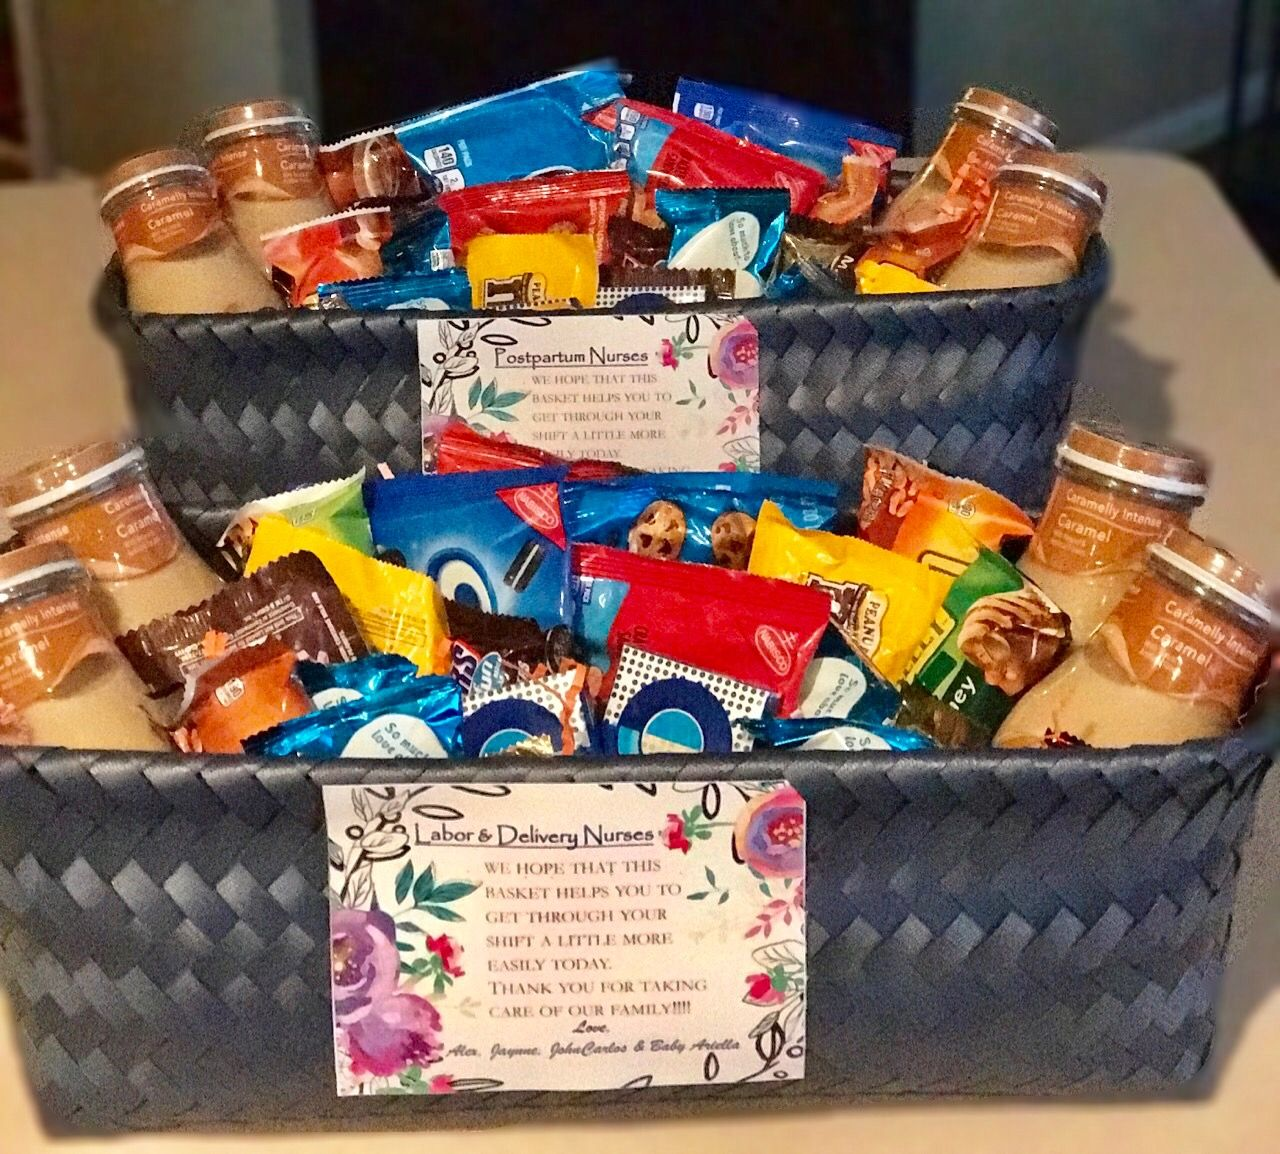 Labor delivery and postpartum nurse thank you baskets